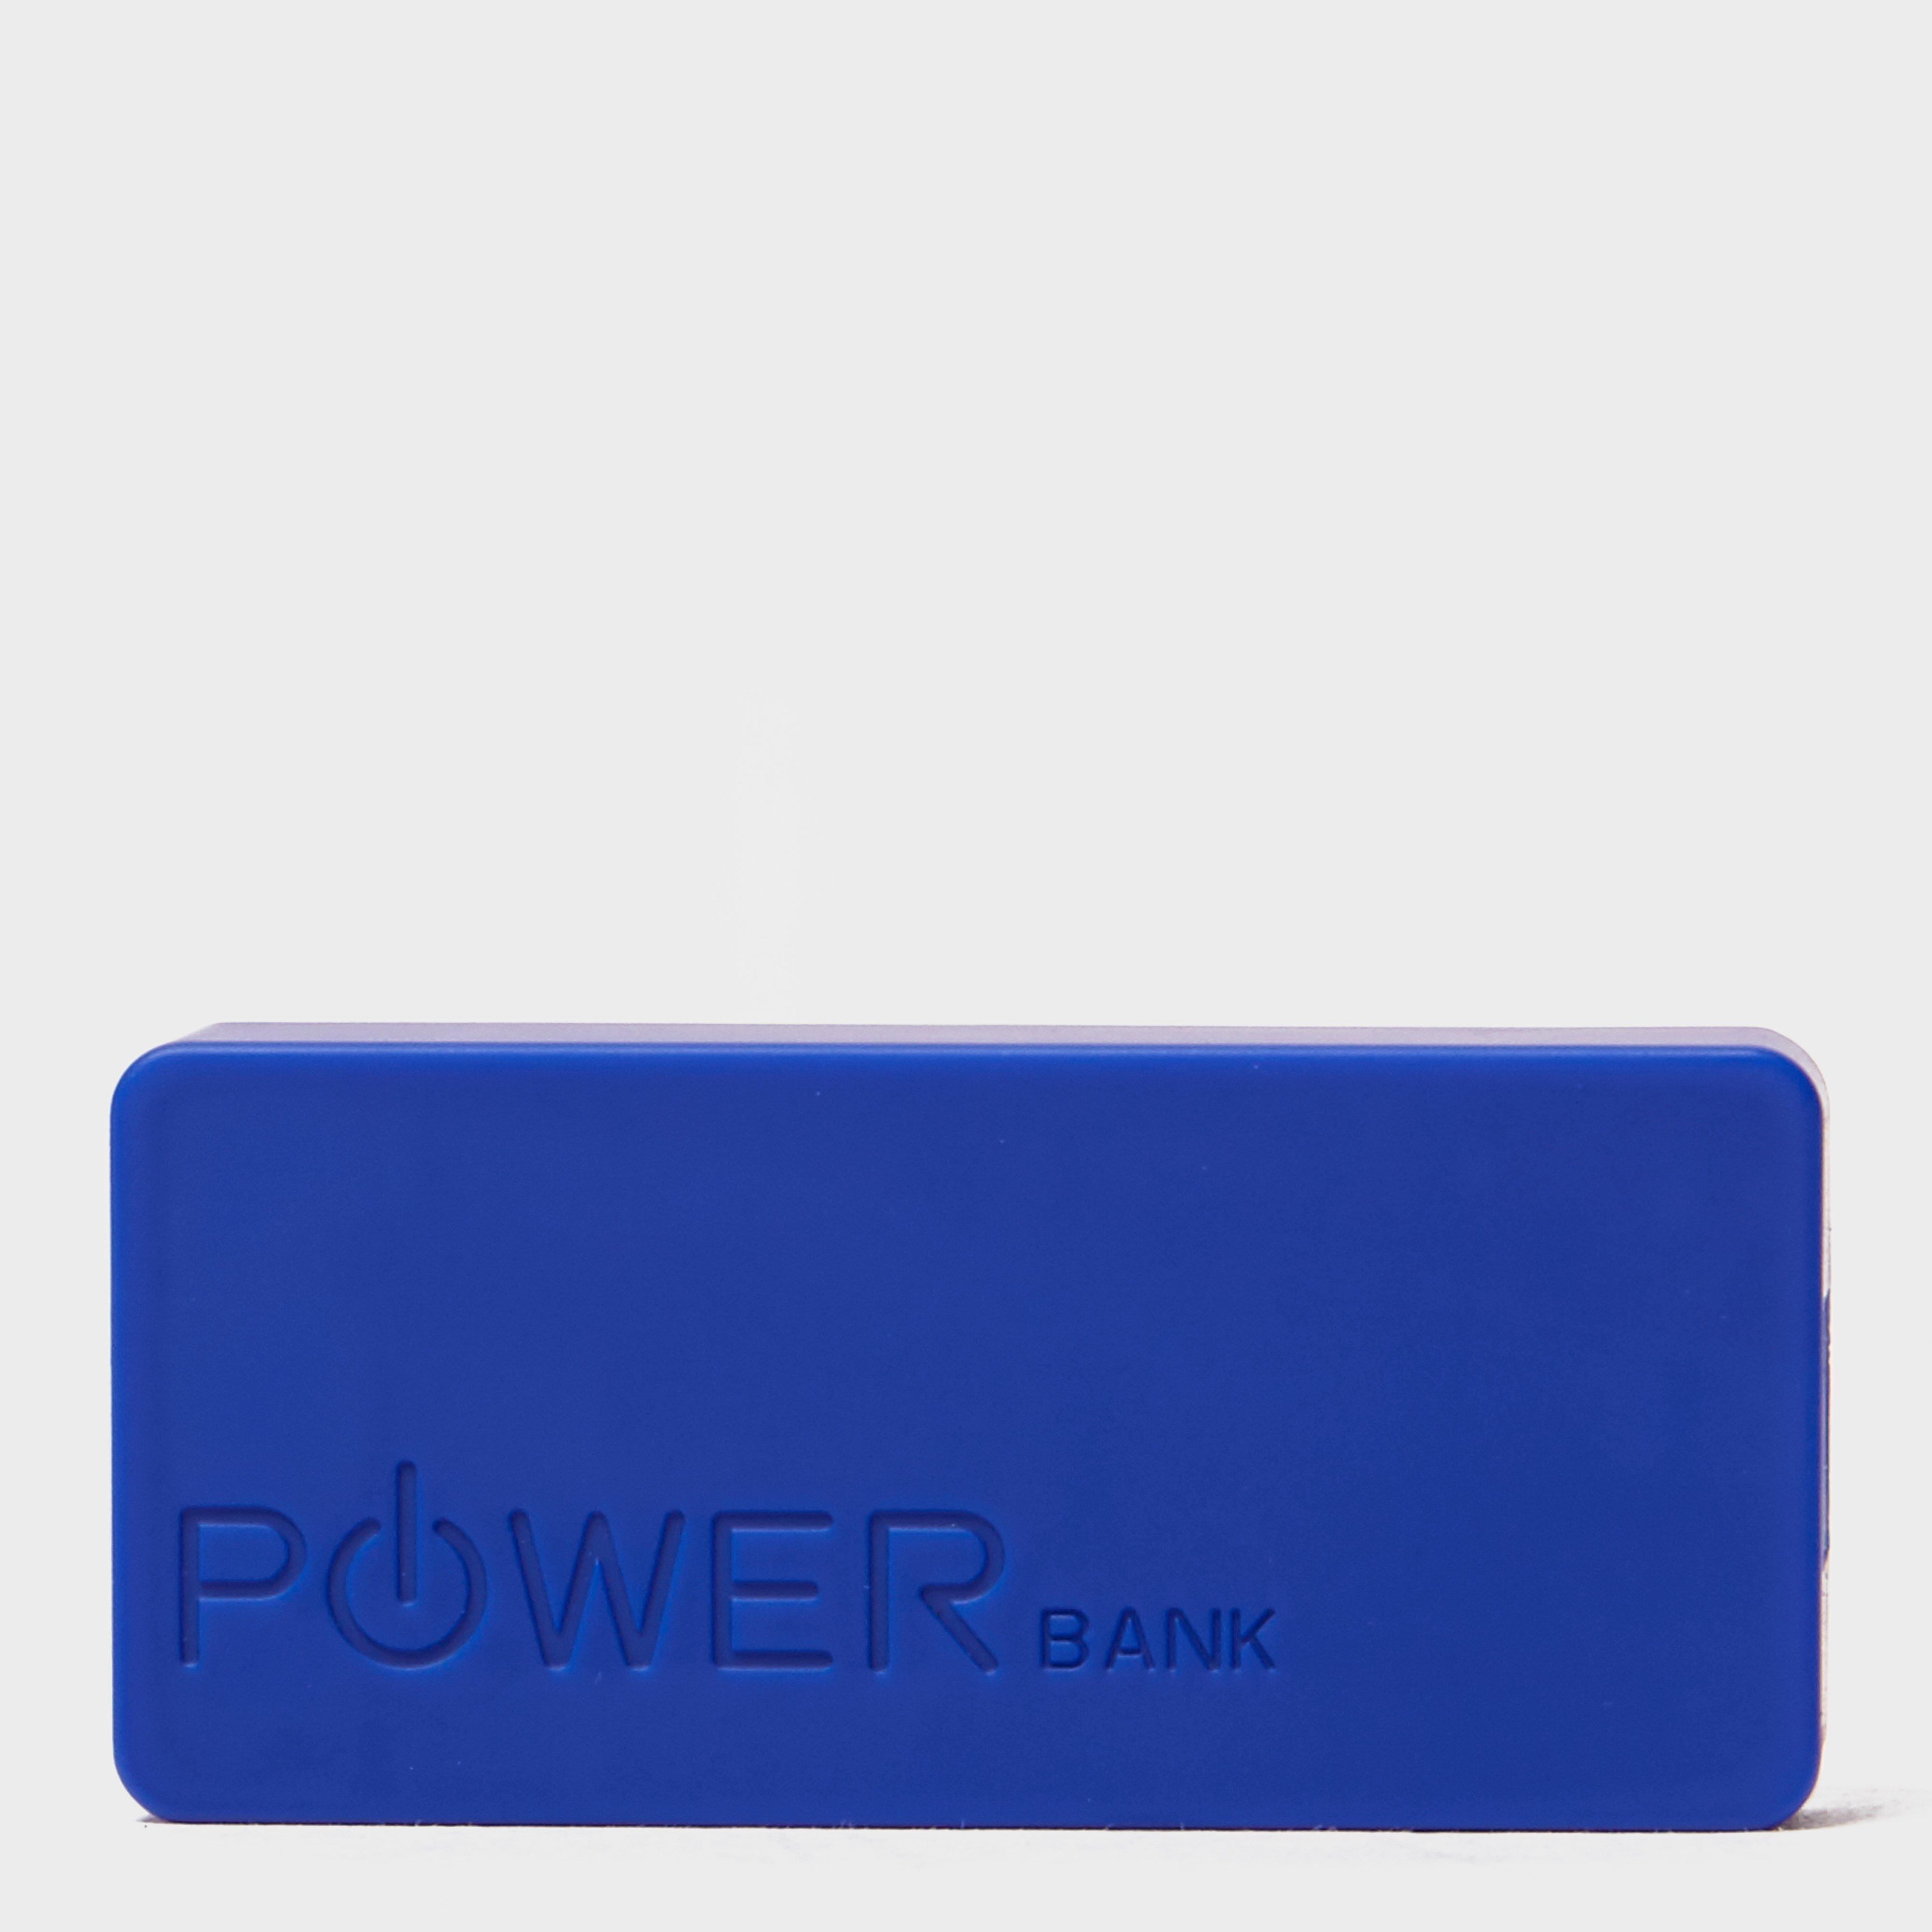 Summit Summit Juice Bank Portable Charger - Blue, Blue